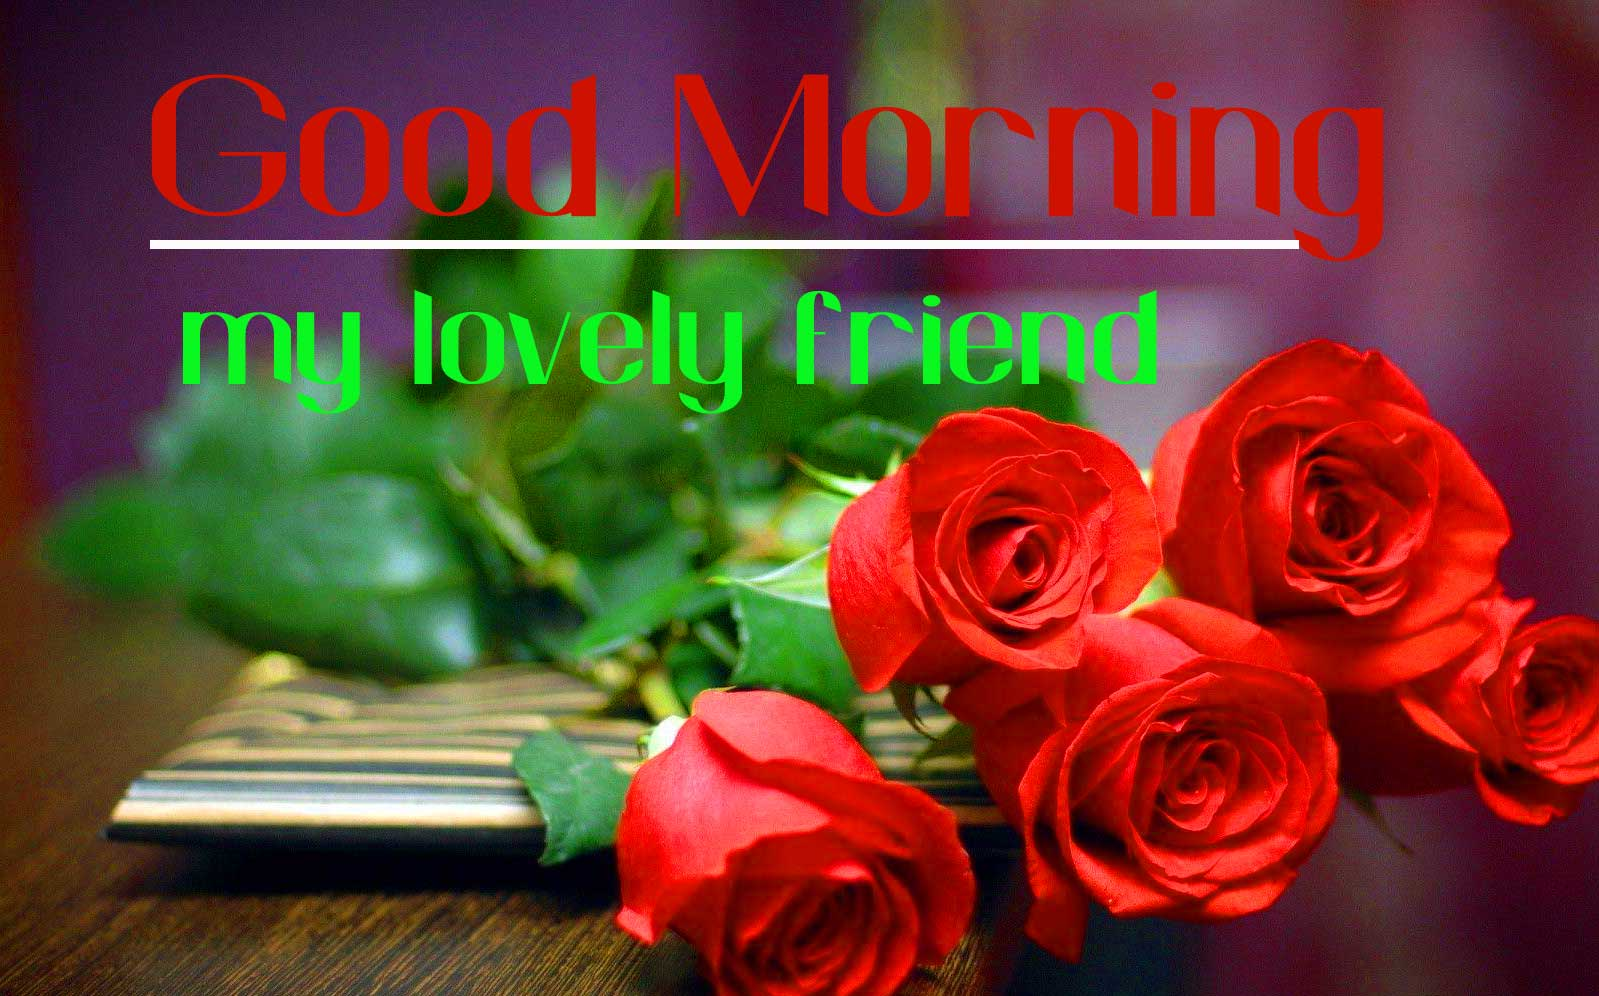 Red Rose Good Morning Friends Images